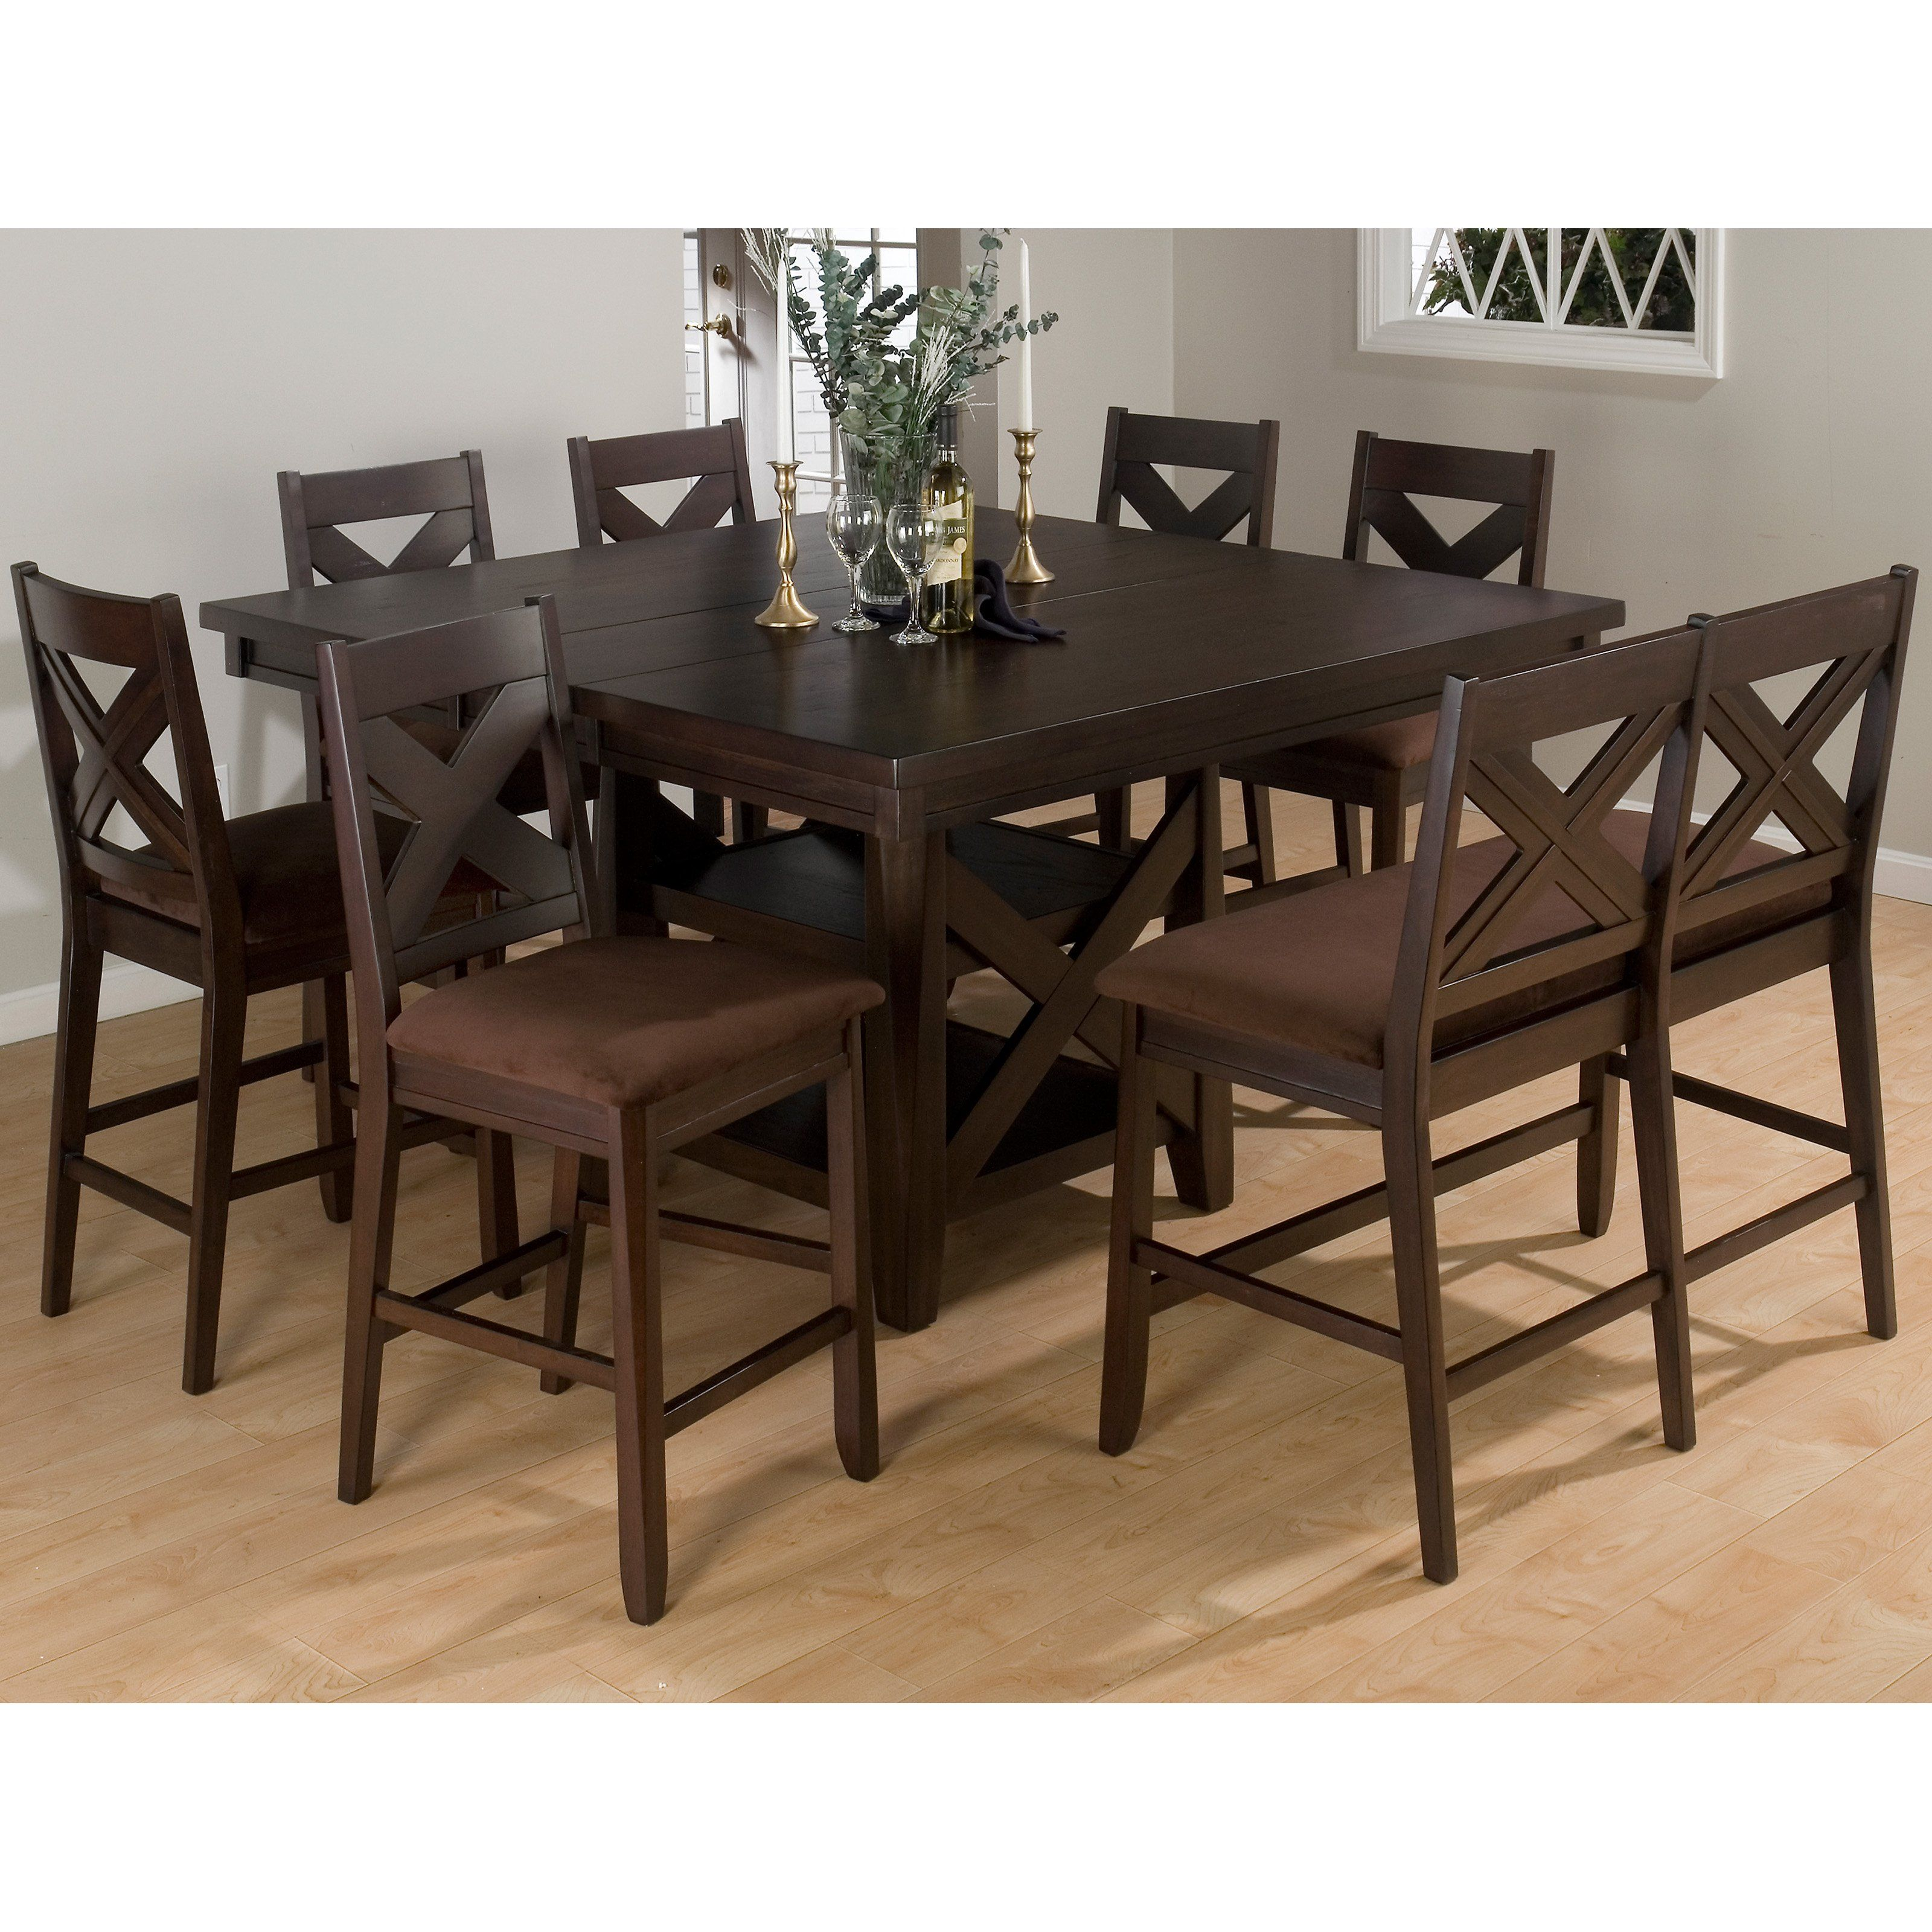 Counter Height Dining Table With Bench: Stonington 8 Pc. Counter Height Dining Set With Bench